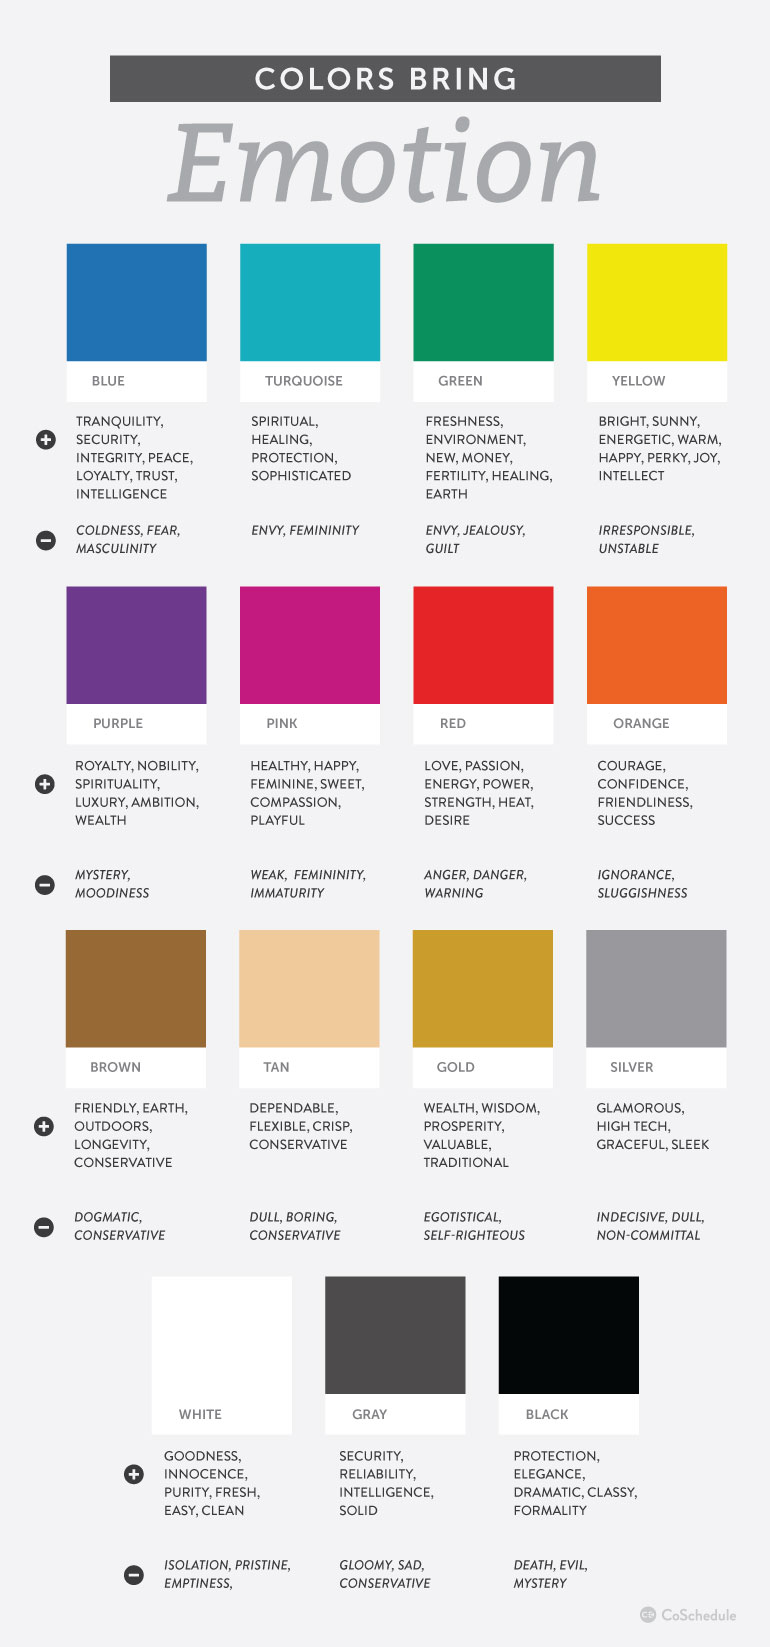 Colors of Emotion infographic